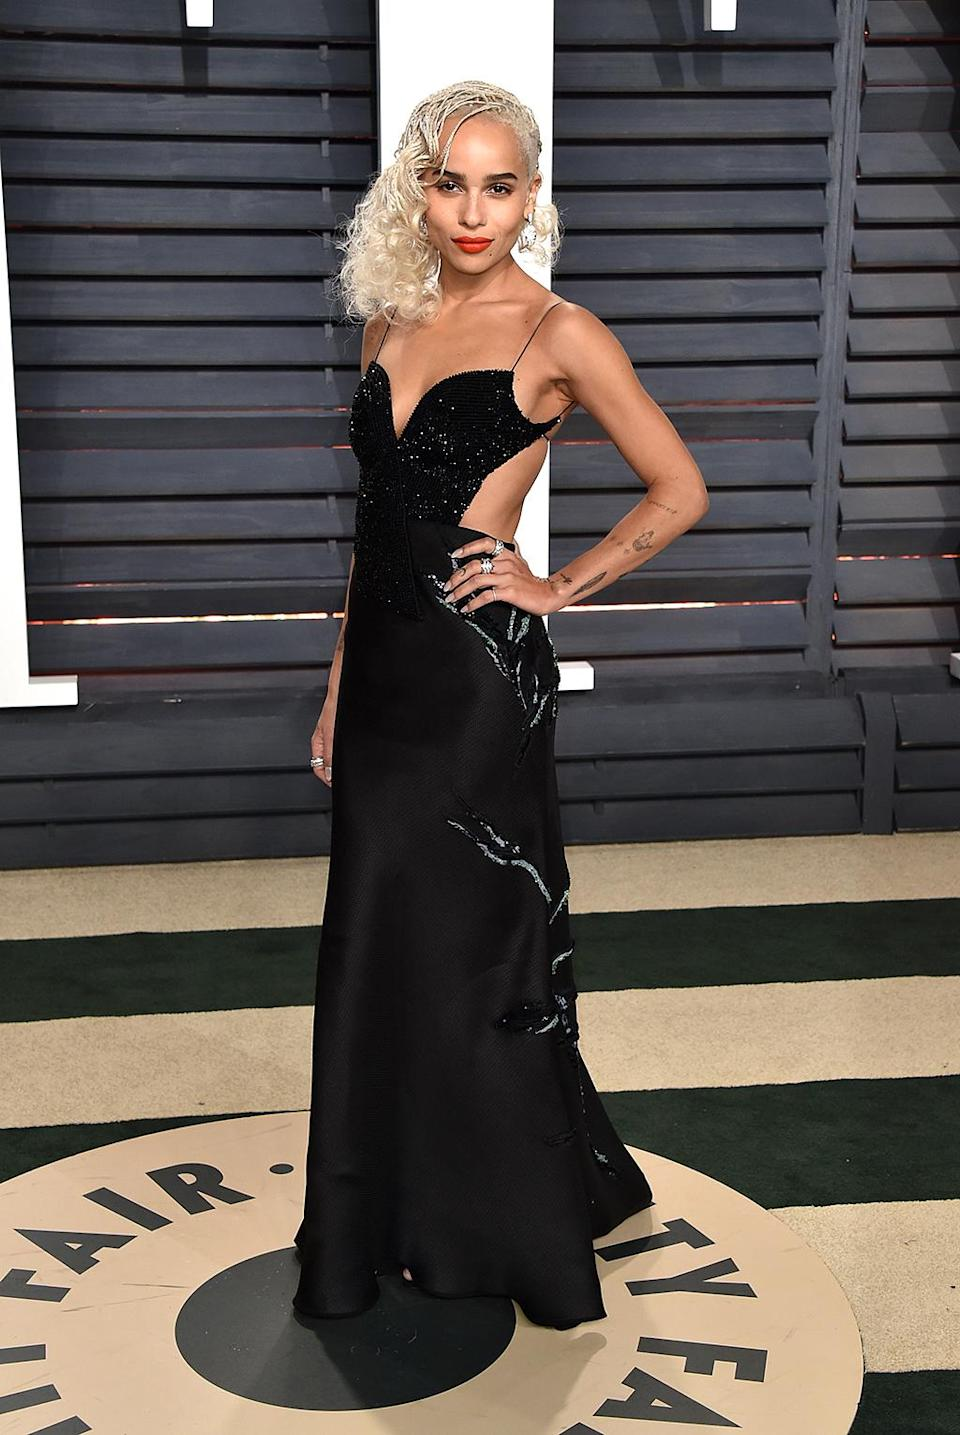 <p>Zoe Kravitz attends the 2017 Vanity Fair Oscar Party hosted by Graydon Carter at Wallis Annenberg Center for the Performing Arts on February 26, 2017 in Beverly Hills, California. (Photo by John Shearer/Getty Images) </p>